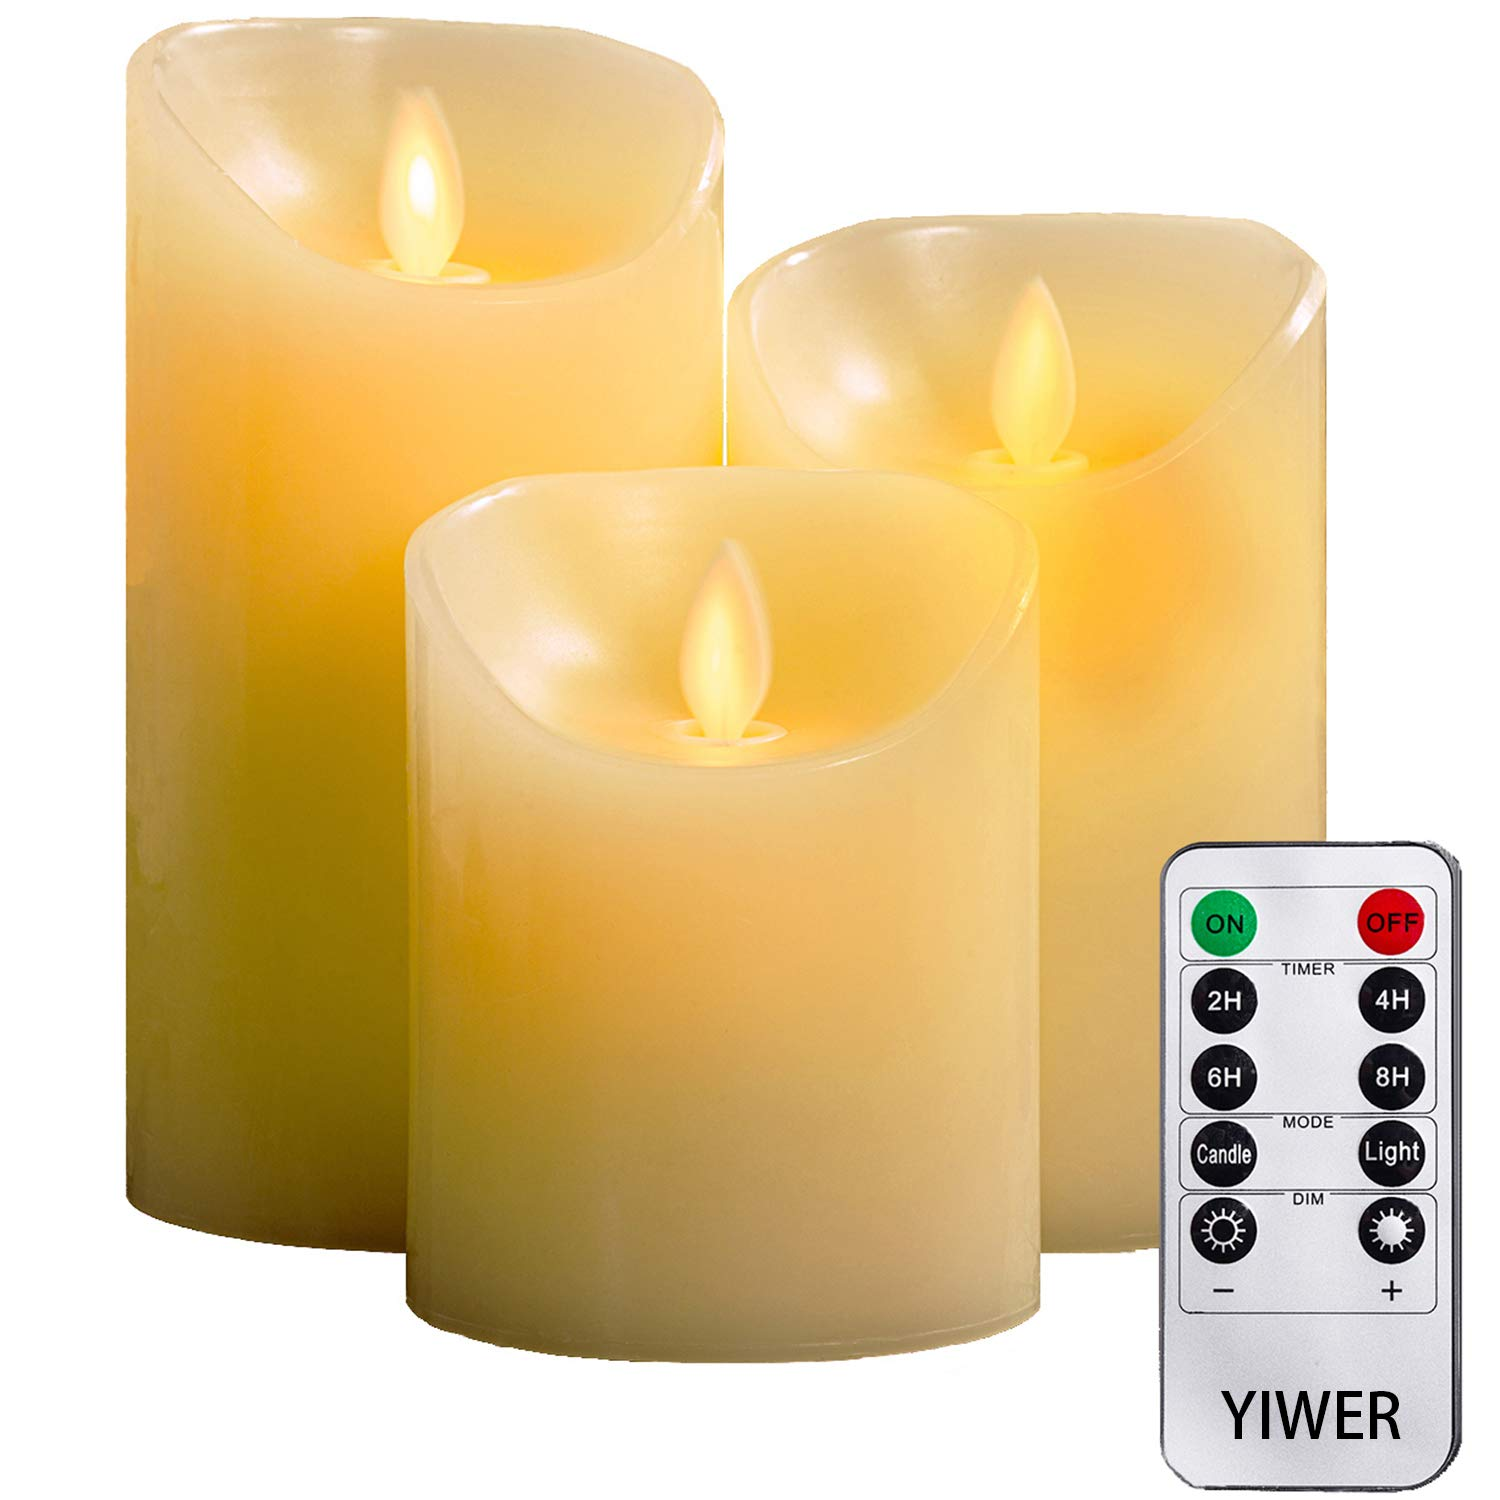 Flameless Candles, 4'' 5'' 6'' Set of 3 Real Wax Not Plastic Pillars, Include Realistic Dancing LED Flames and 10-key Remote Control with 2/4/6/8-hours Timer Function, 300+ Hours-YIWER (3, Ivory) by YIWER